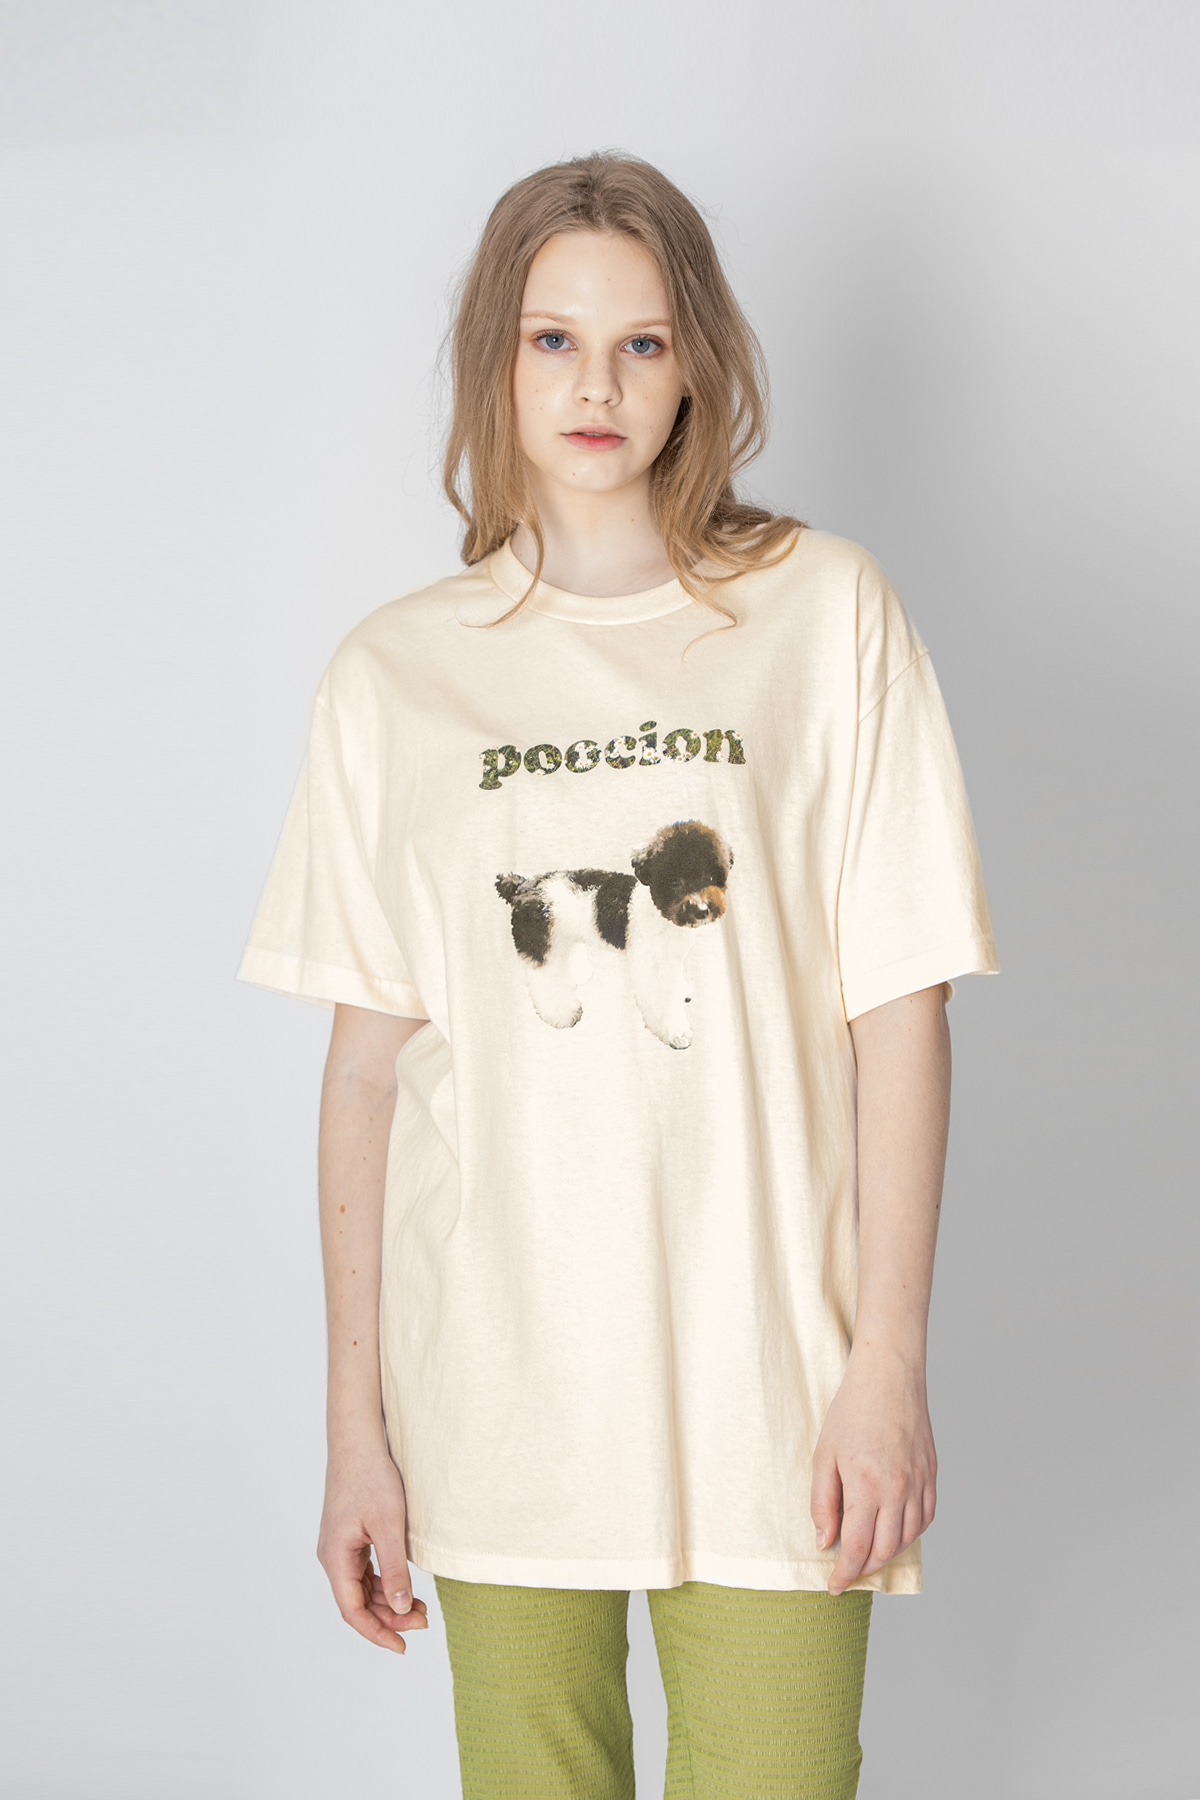 POOCION Twin T-shirt (Ivory)